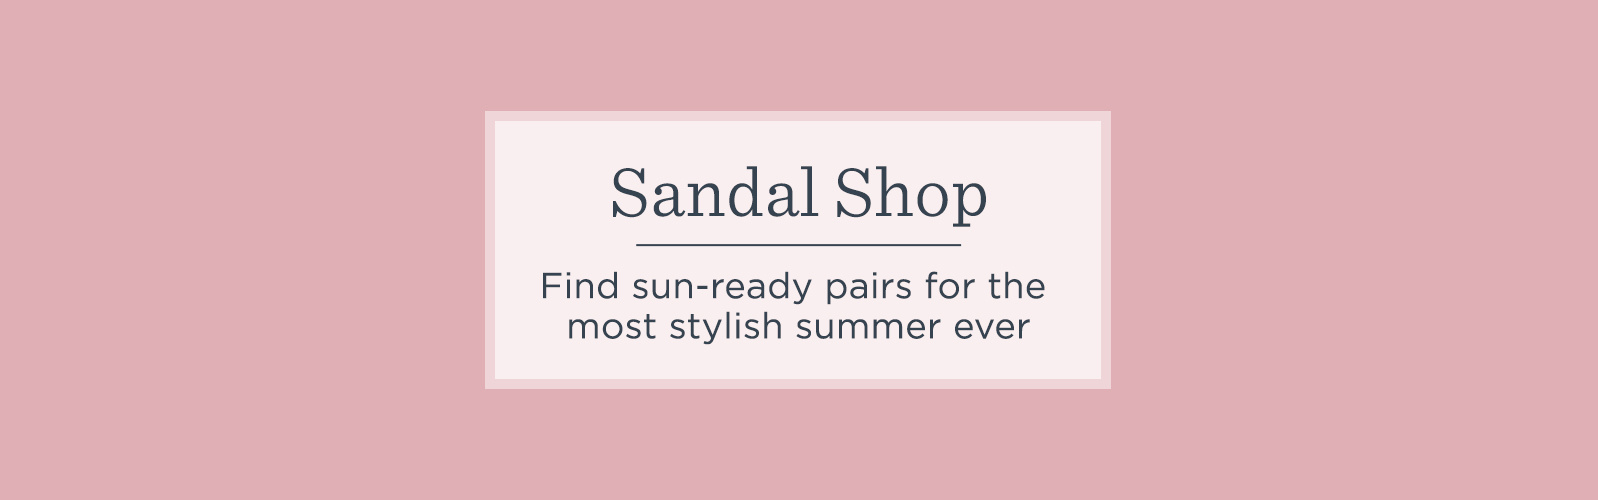 Sandal Shop. Find sun-ready pairs for the most stylish summer ever